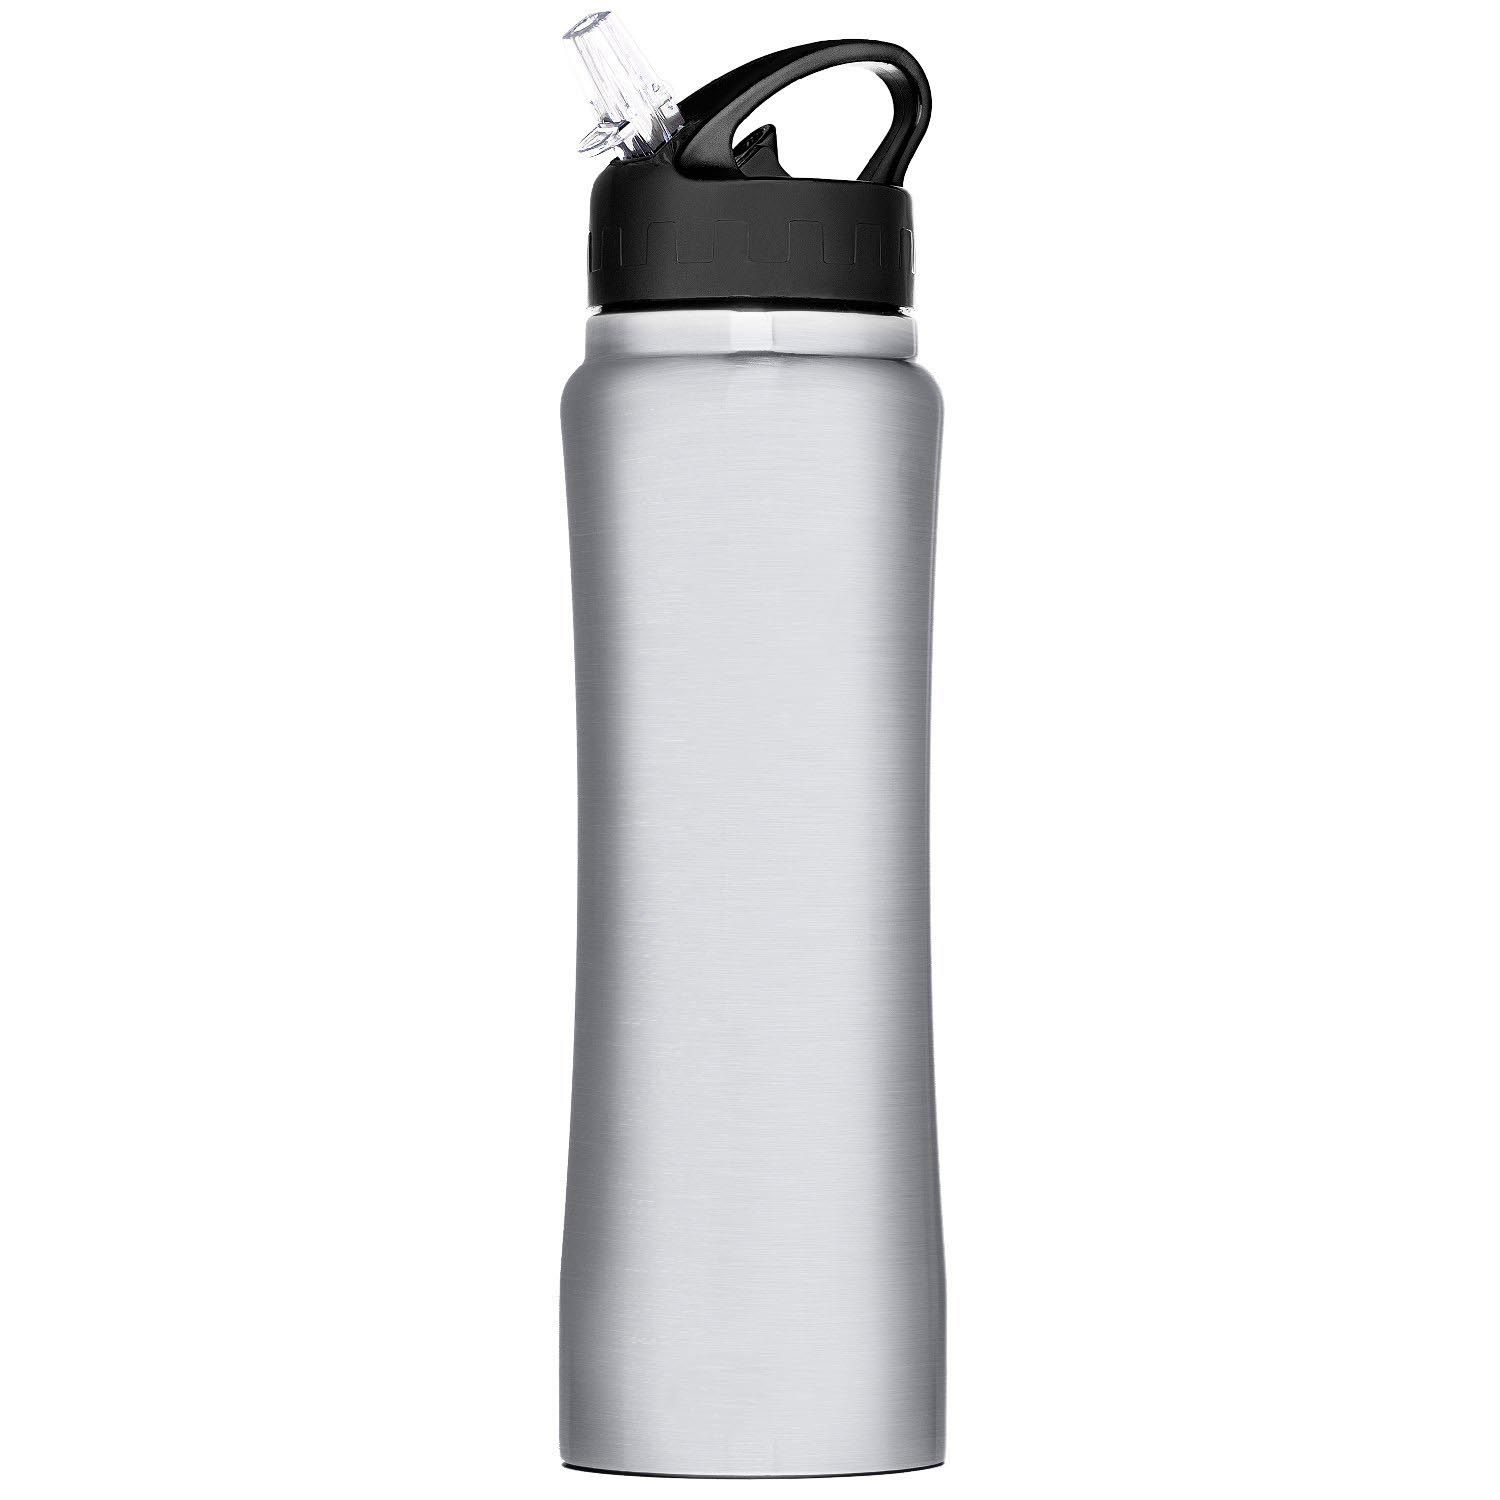 Pin by Bello on ZCHDC Insulated stainless steel water